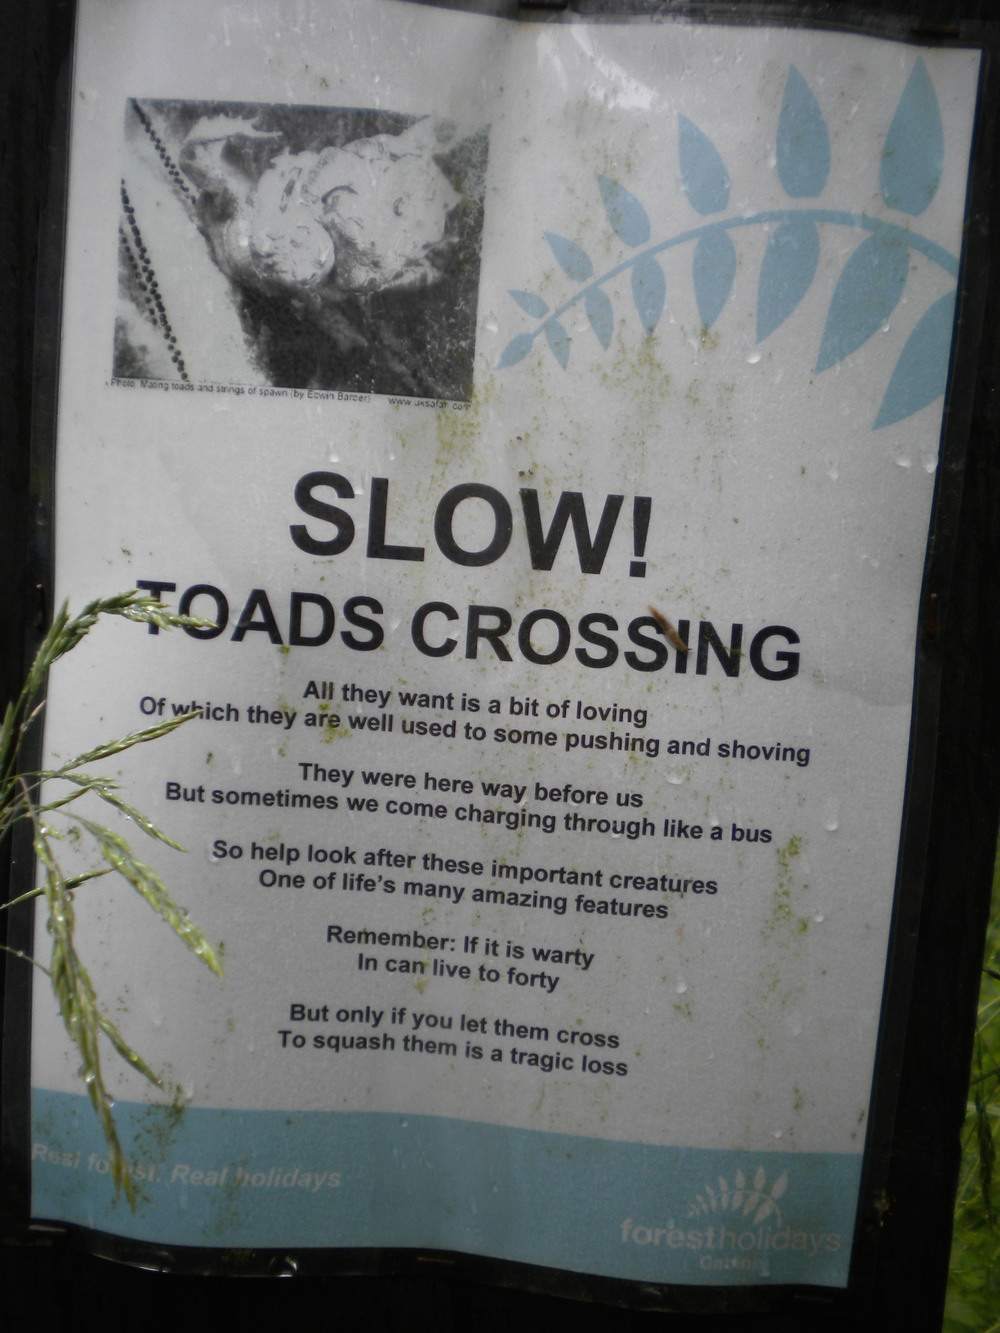 Toad awareness campaign